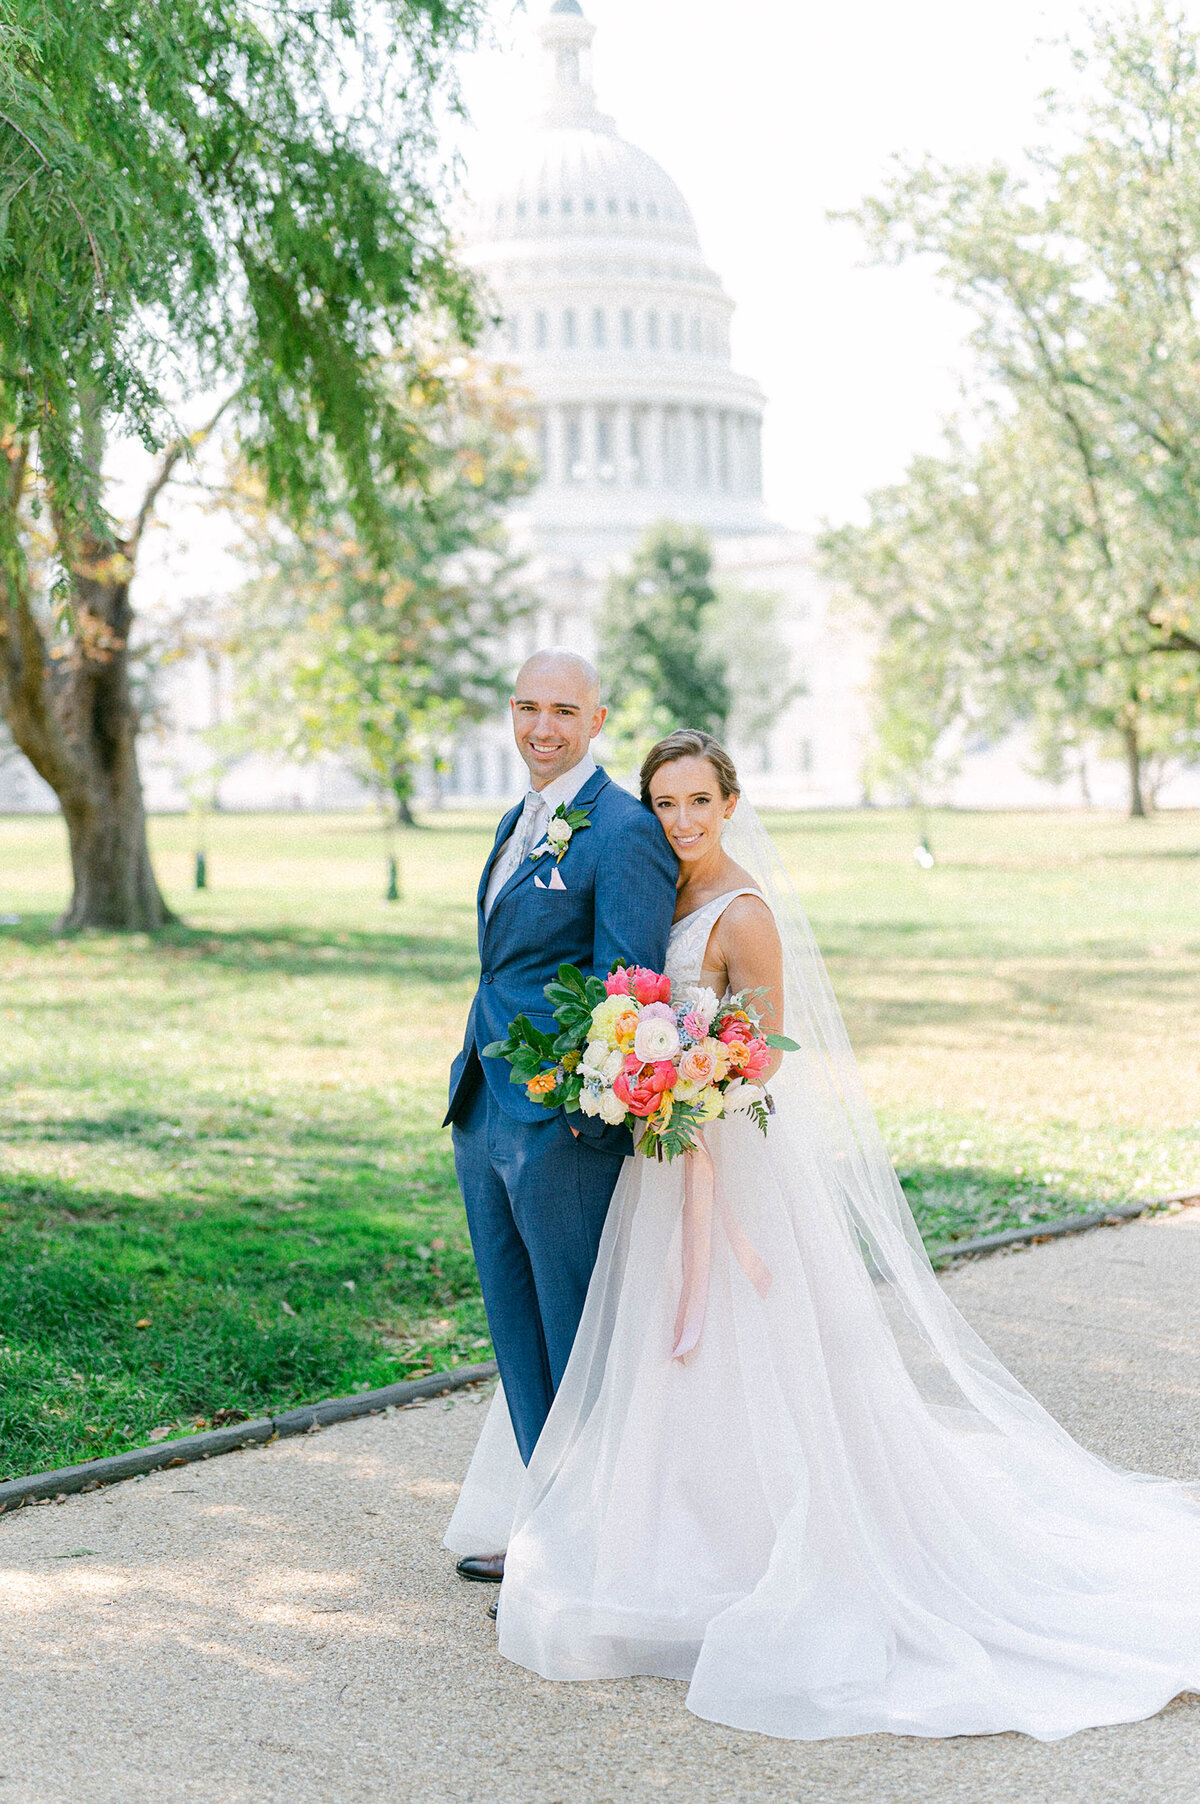 Jennifer Bosak Photography - DC Area Wedding Photography - DC, Virginia, Maryland - Jeanna + Michael - Decatur House Wedding - 16